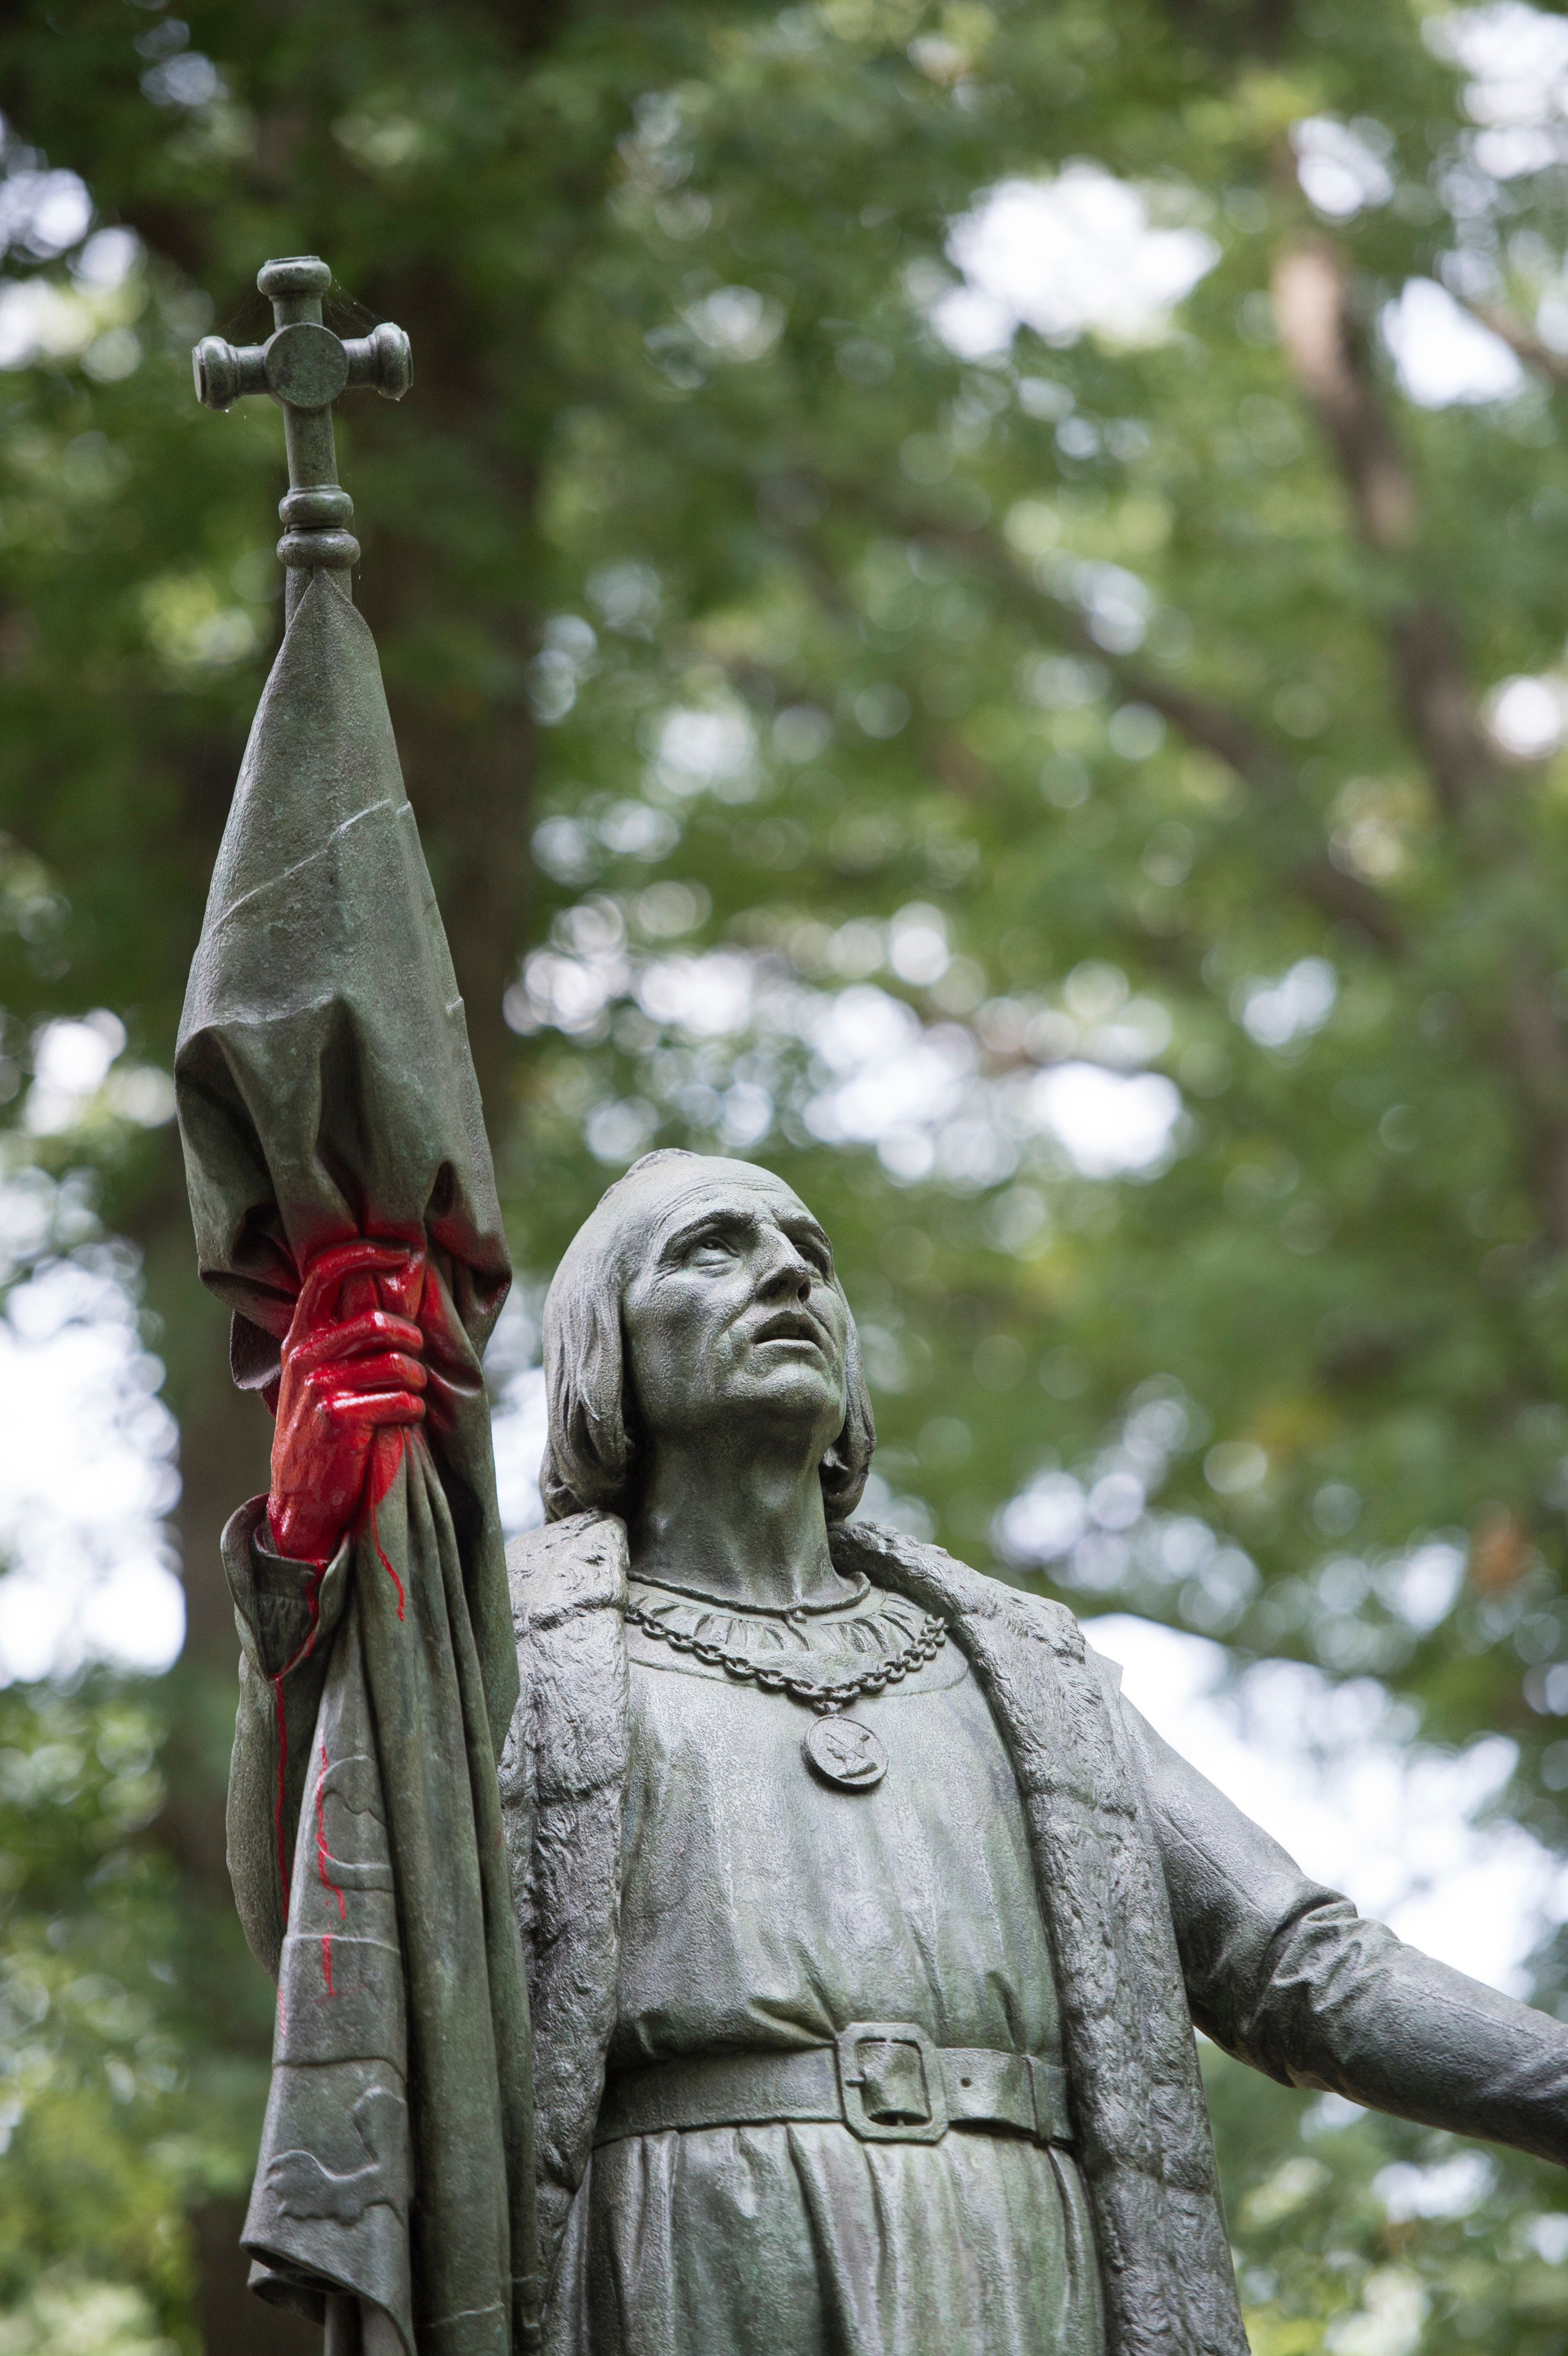 A statue of Christopher Columbus was defaced today in New York City's Central Park. Vandals splashed red paint on the hands and  pedistal of the statue. (Photo by Howard Simmons/NY Daily News via Getty Images)